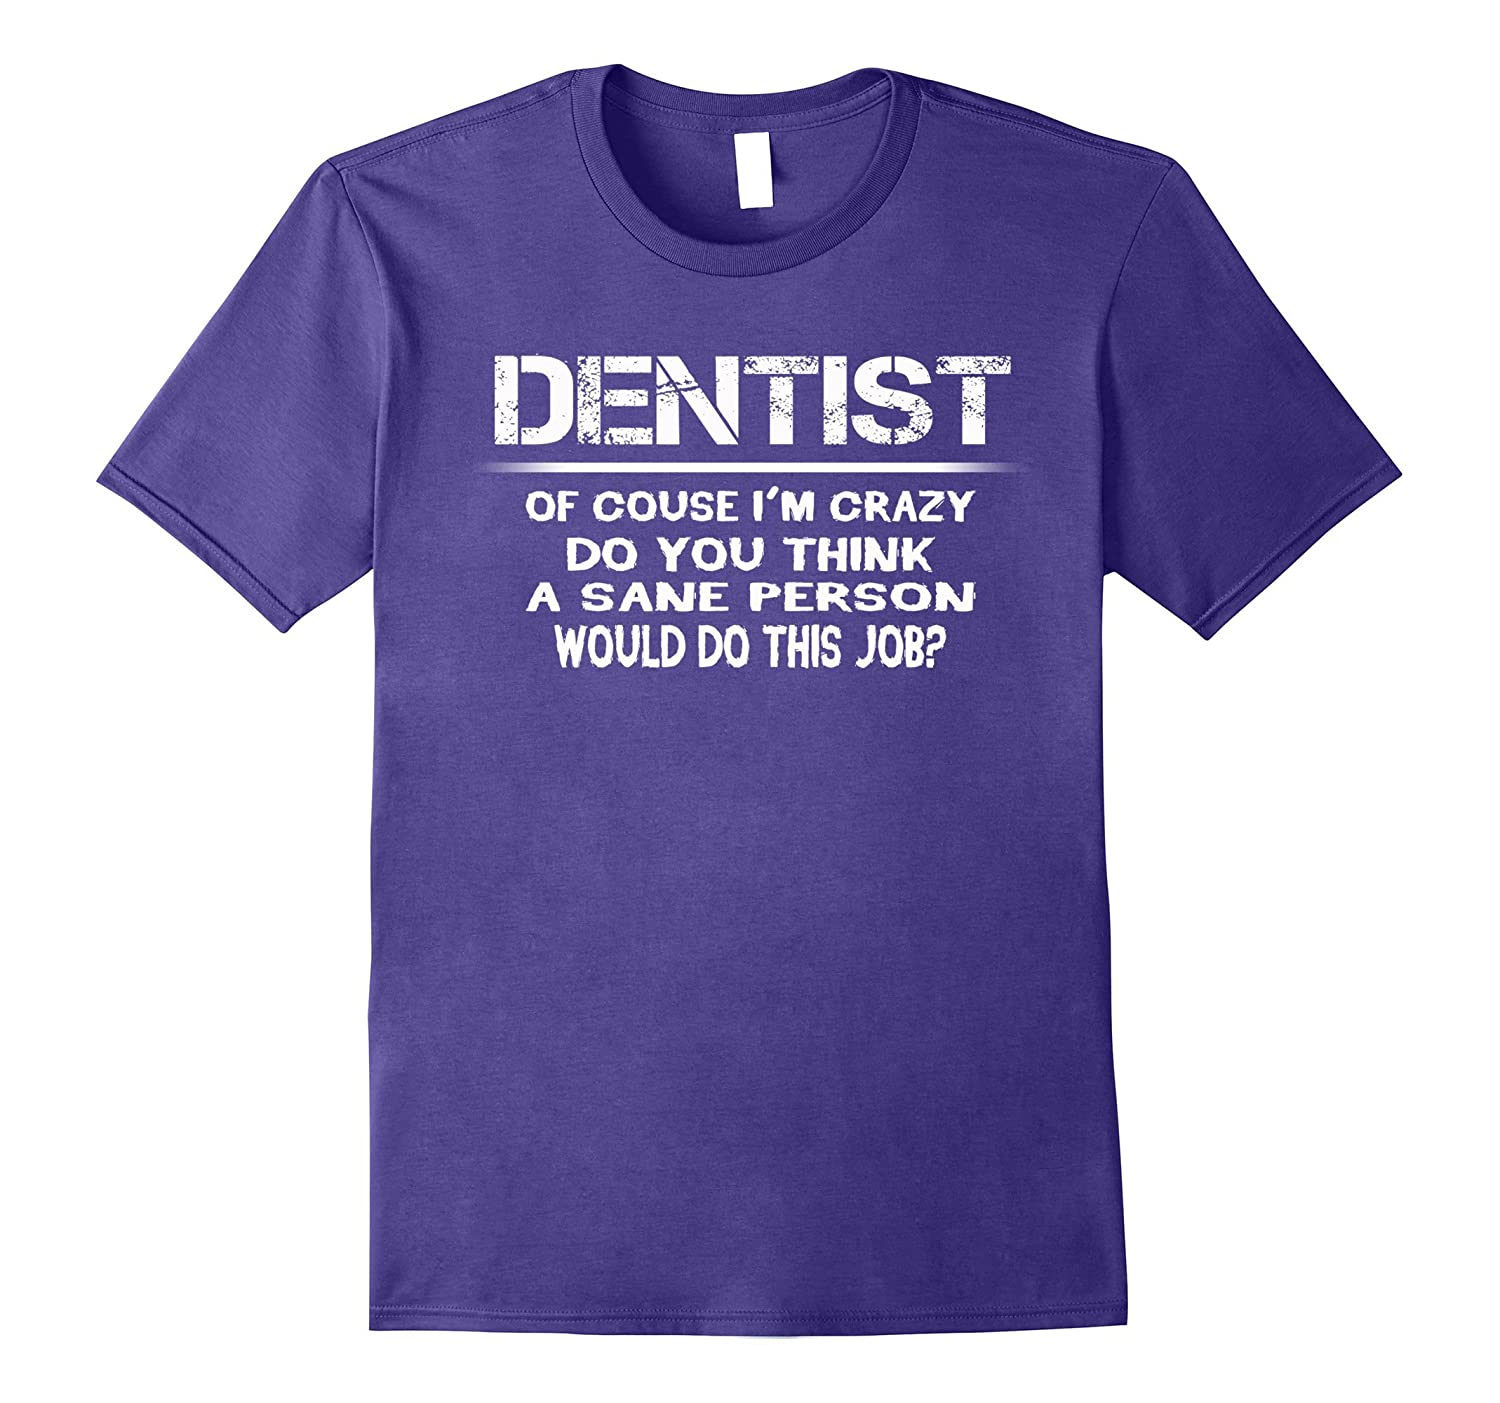 Dentist im crazy the sane people would do this job t-shirt-TJ